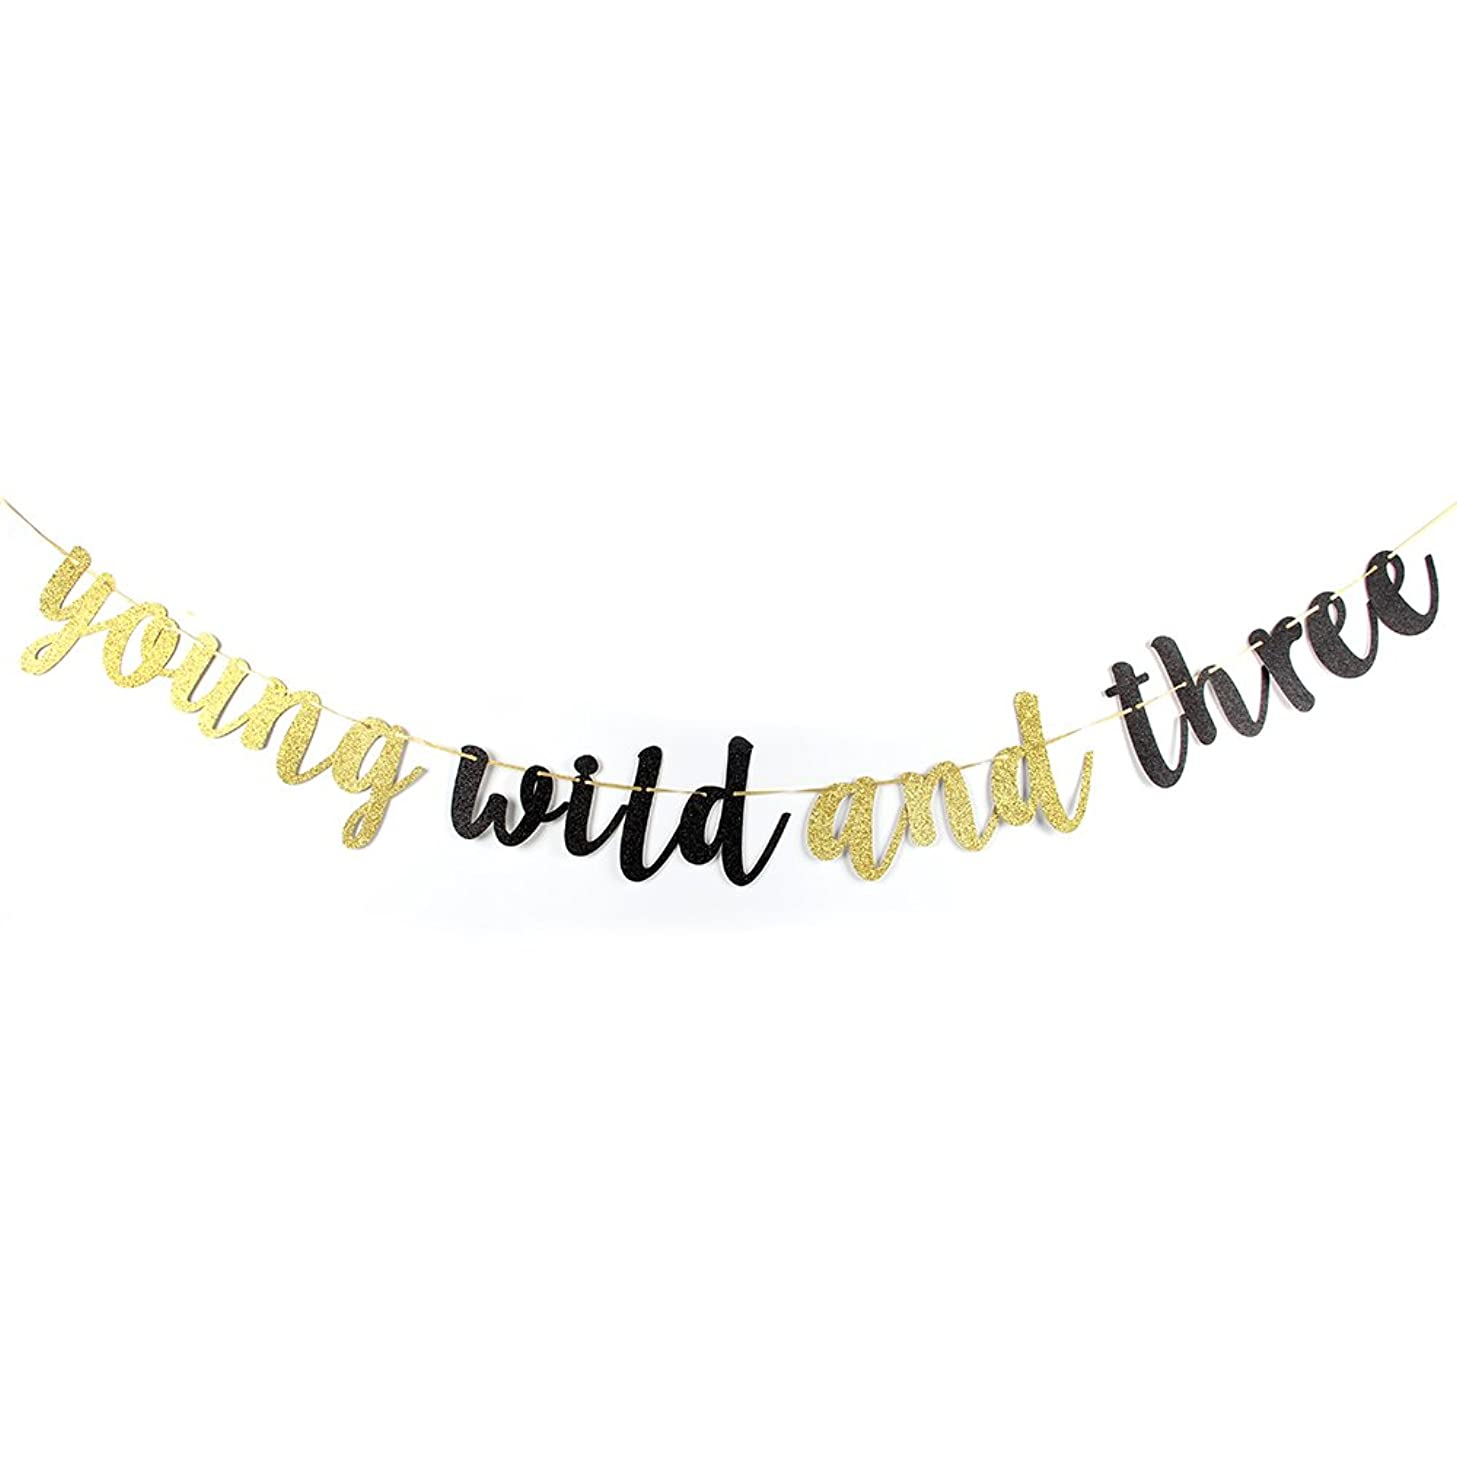 Karoo Jan Young Wild and Three Banner -Gold Black Glitter Happy 3rd Birthday Party Decoration Bunting Photo Props,Baby Party Supplies